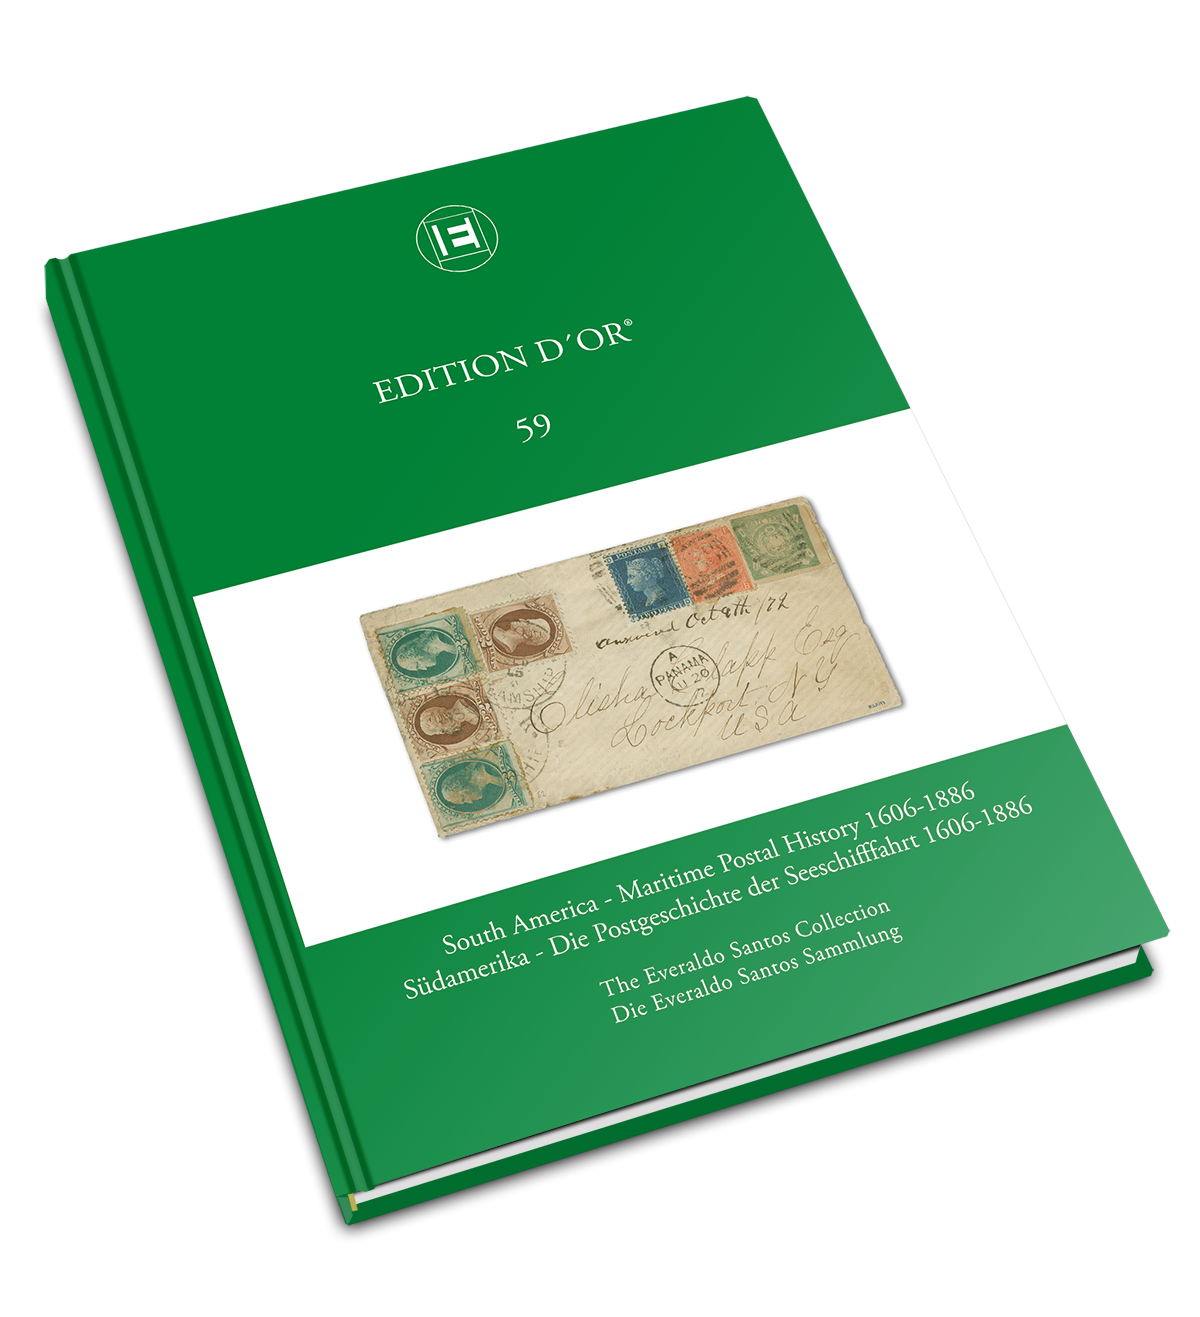 Vol. 59: South America – Maritime Postal History 1606-1886 The Everaldo Santos Collection